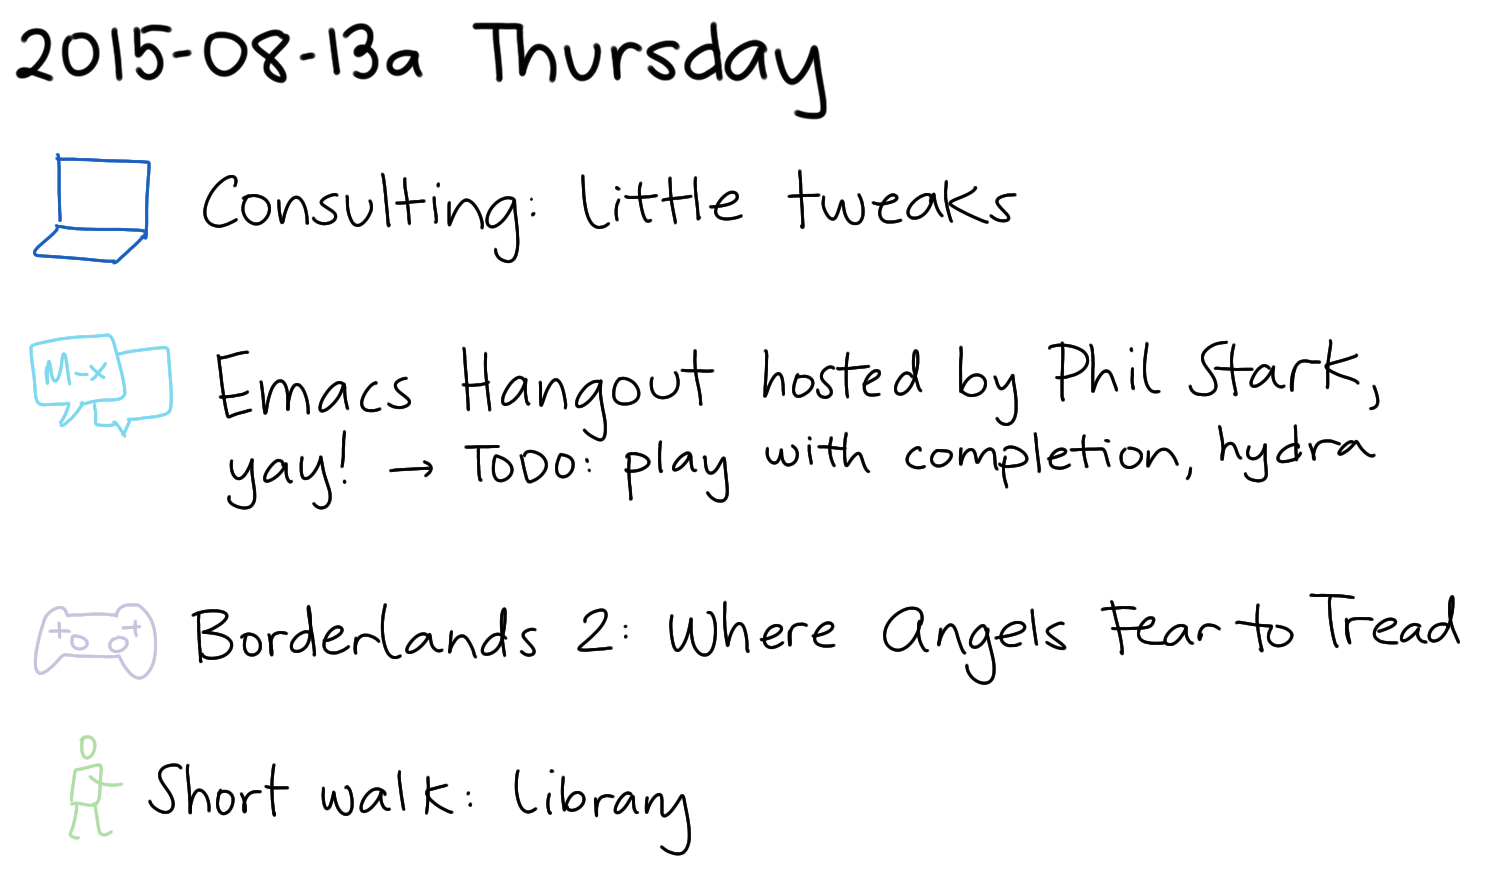 2015-08-13a Thursday -- index card #journal.png